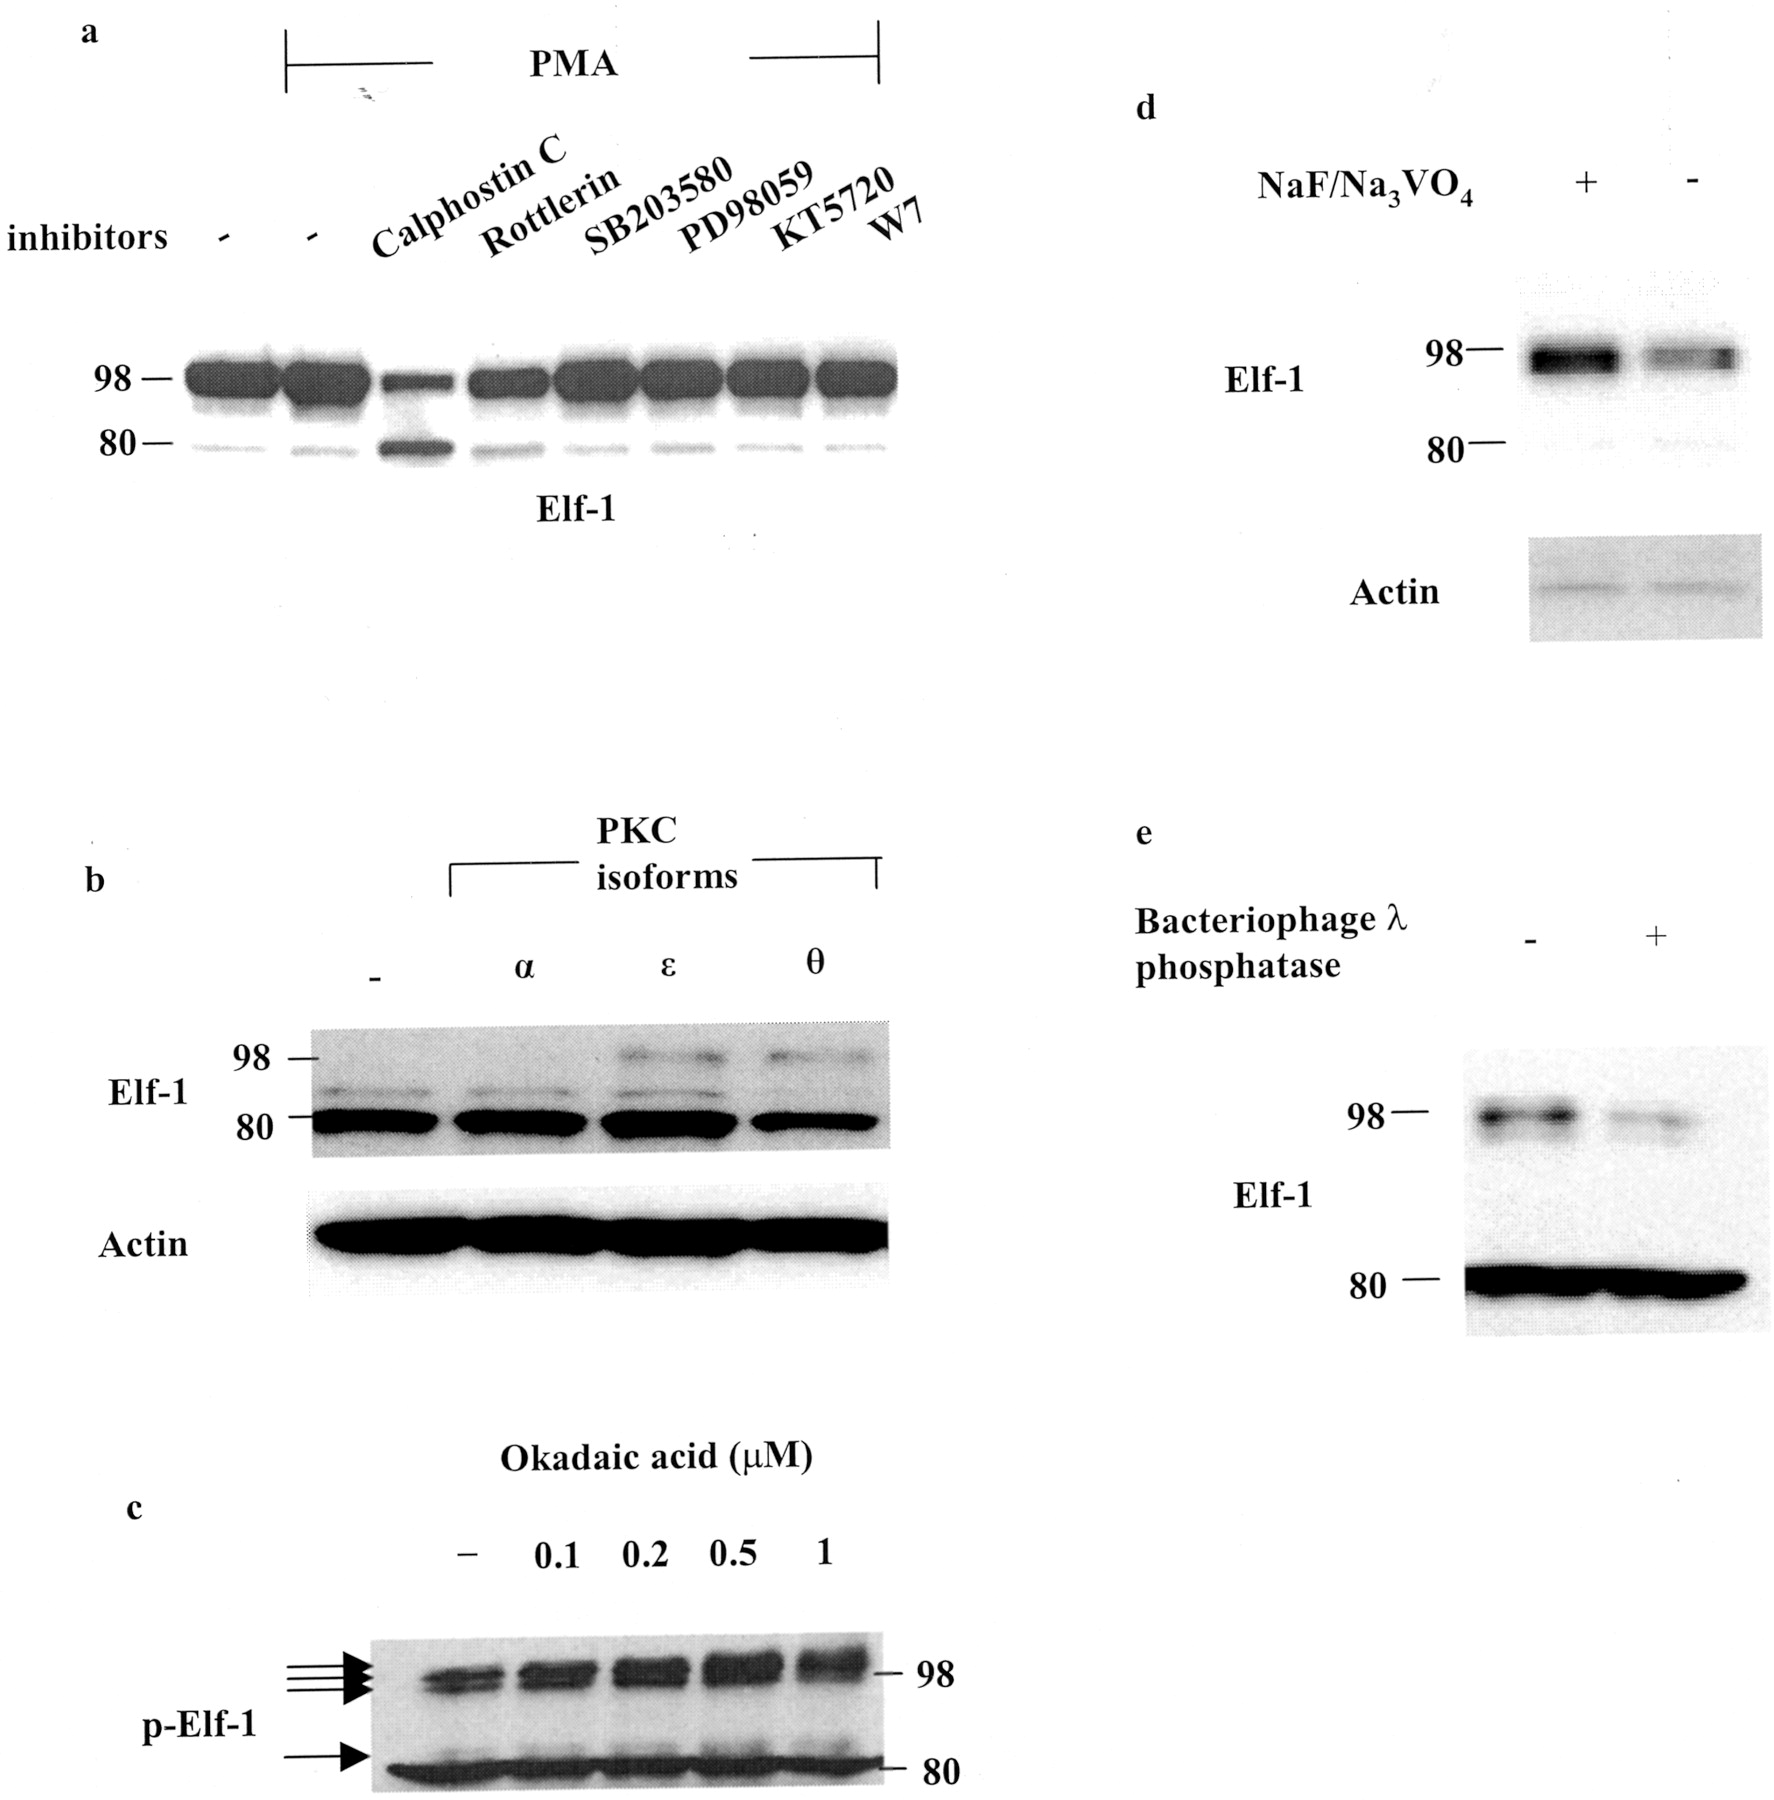 Phosphorylation and O-Linked Glycosylation of Elf-1 Leads to Its